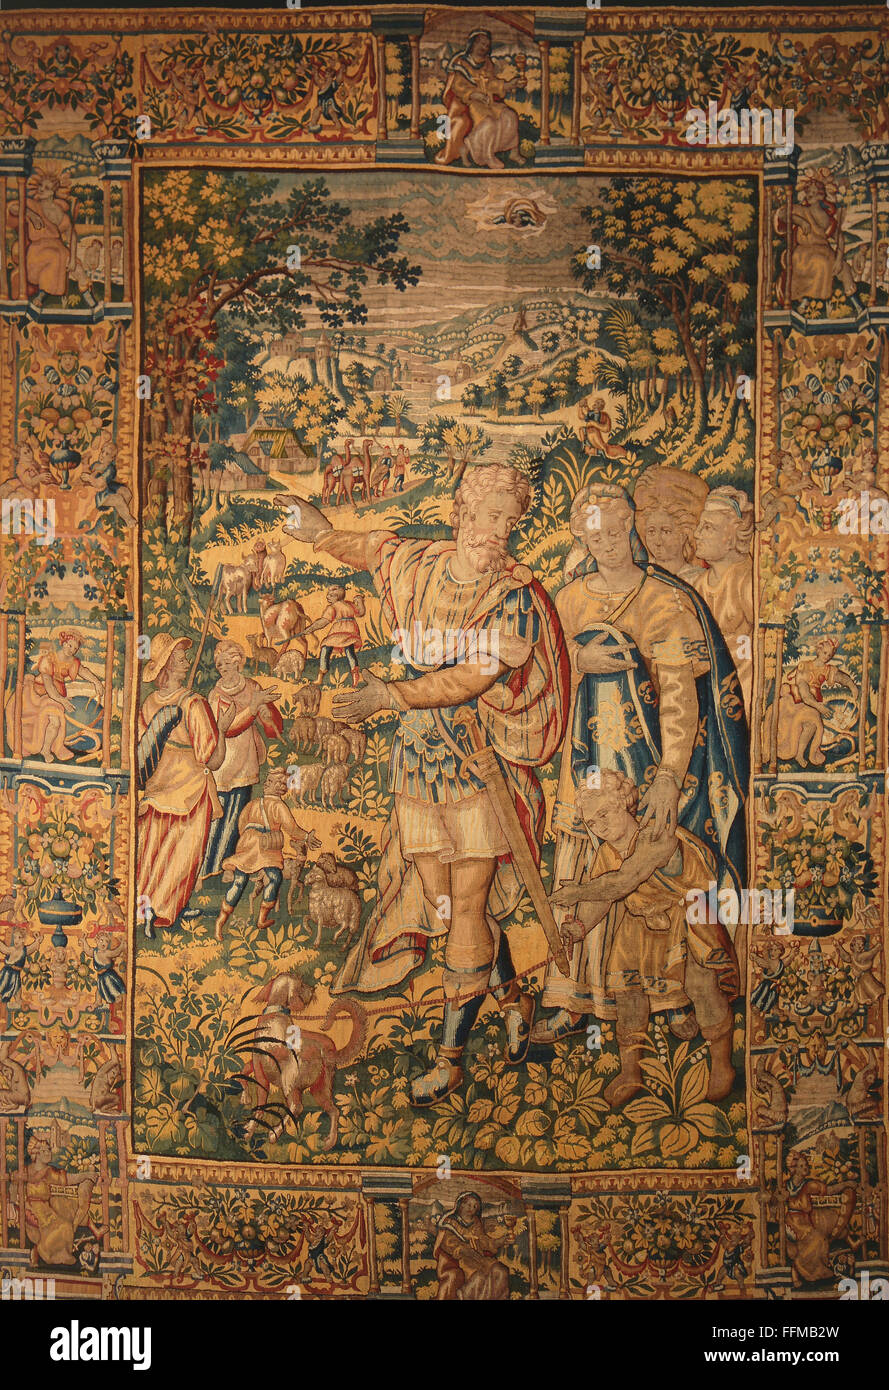 Abraham, son of Terah, ancestor of the Hebrews, expulsing Hagar and Ismael, tapestry, Martin Reymbouts manufactory, - Stock Image